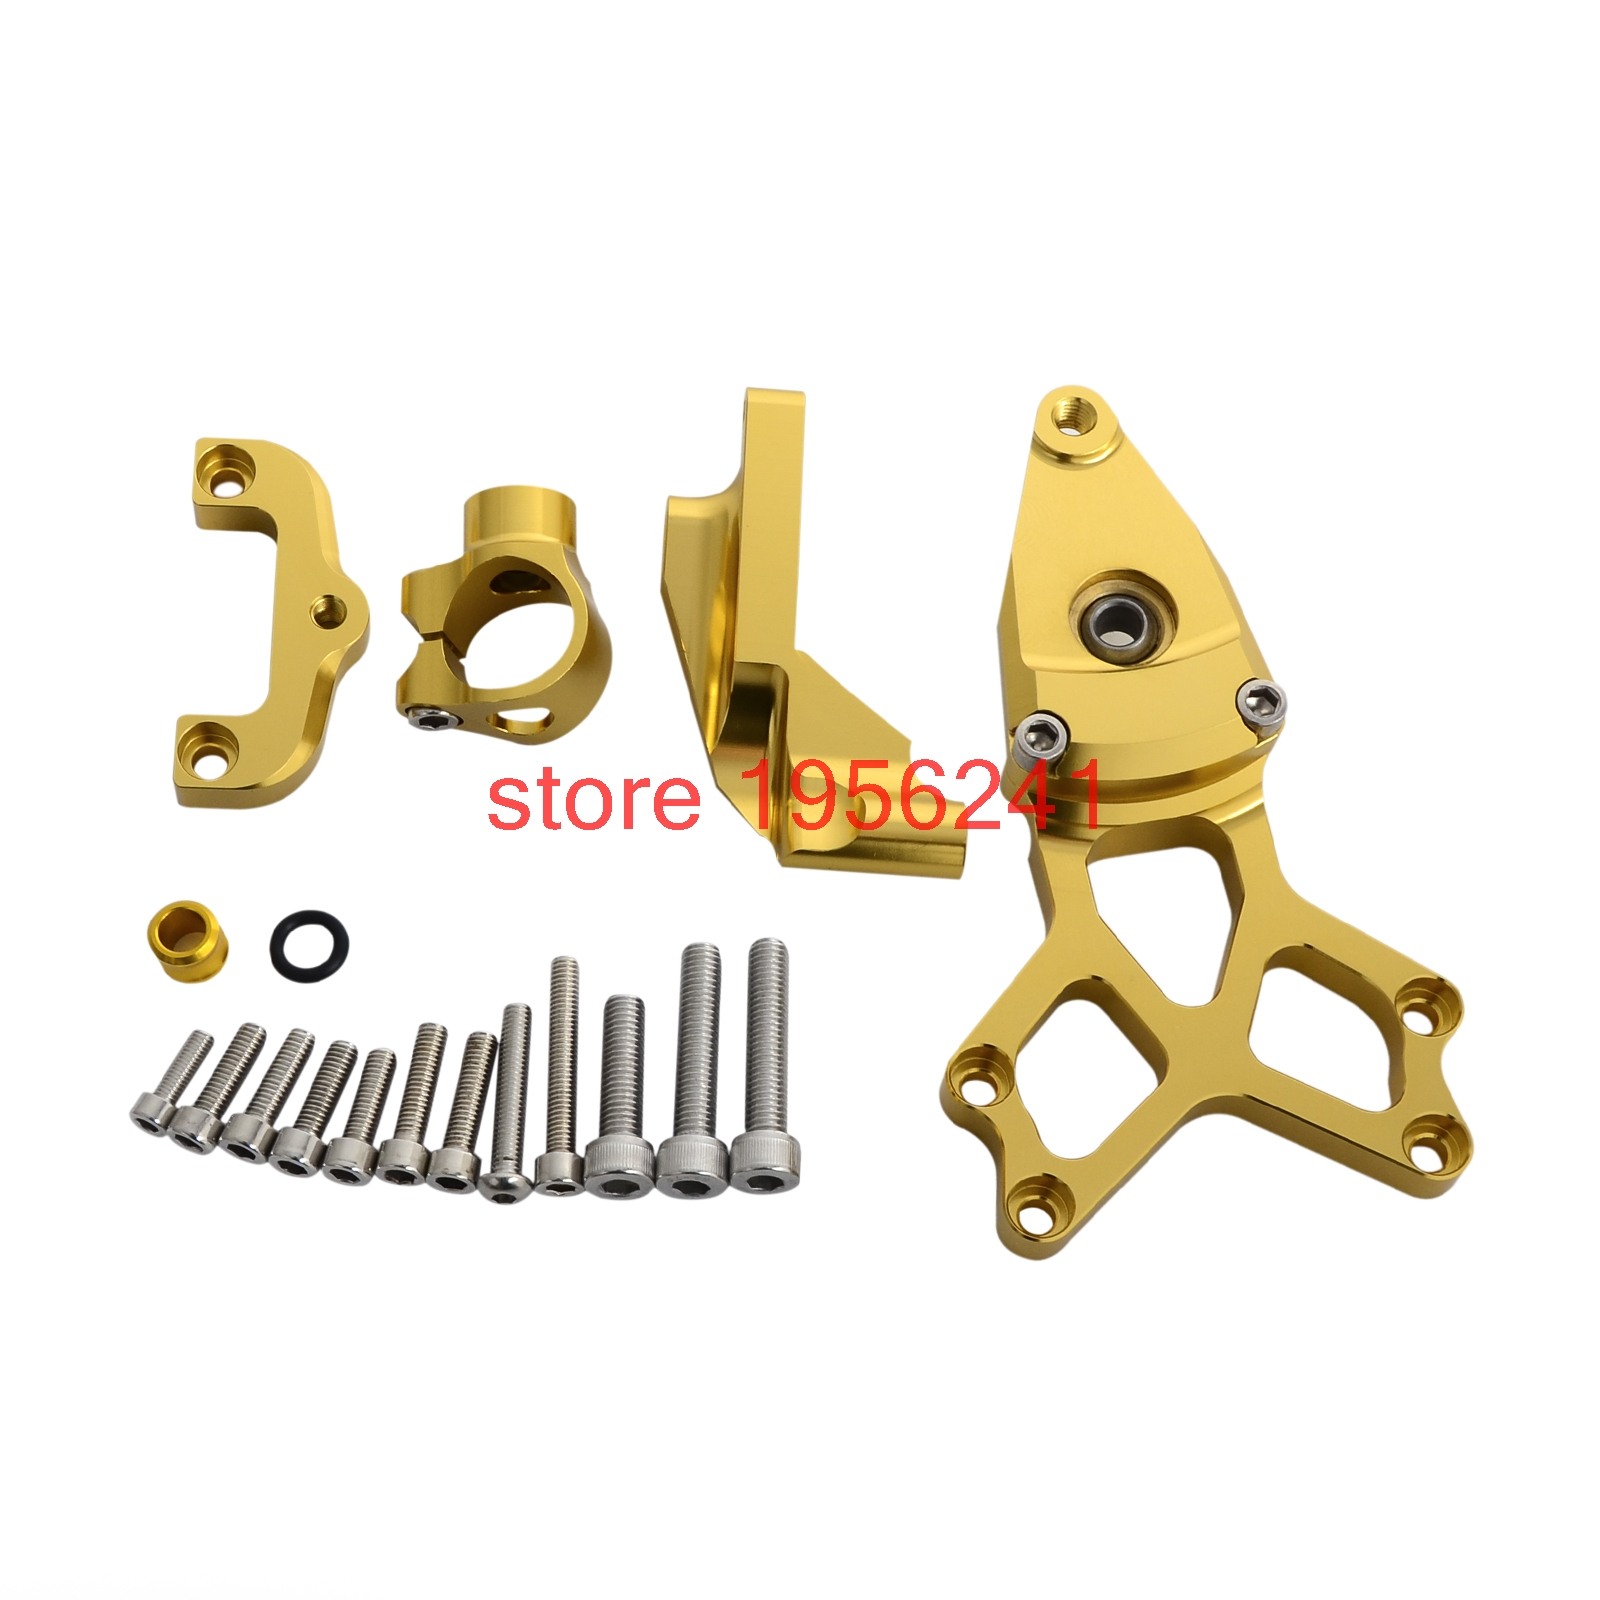 Steering Damper Mounting Bracket Kit For Honda CBR1000RR ABS SP 2008 - 2016 2010 2012 2014 215 CBR 1000RR CBR1000 RR NEW arashi motorcycle radiator grille protective cover grill guard protector for 2008 2009 2010 2011 honda cbr1000rr cbr 1000 rr